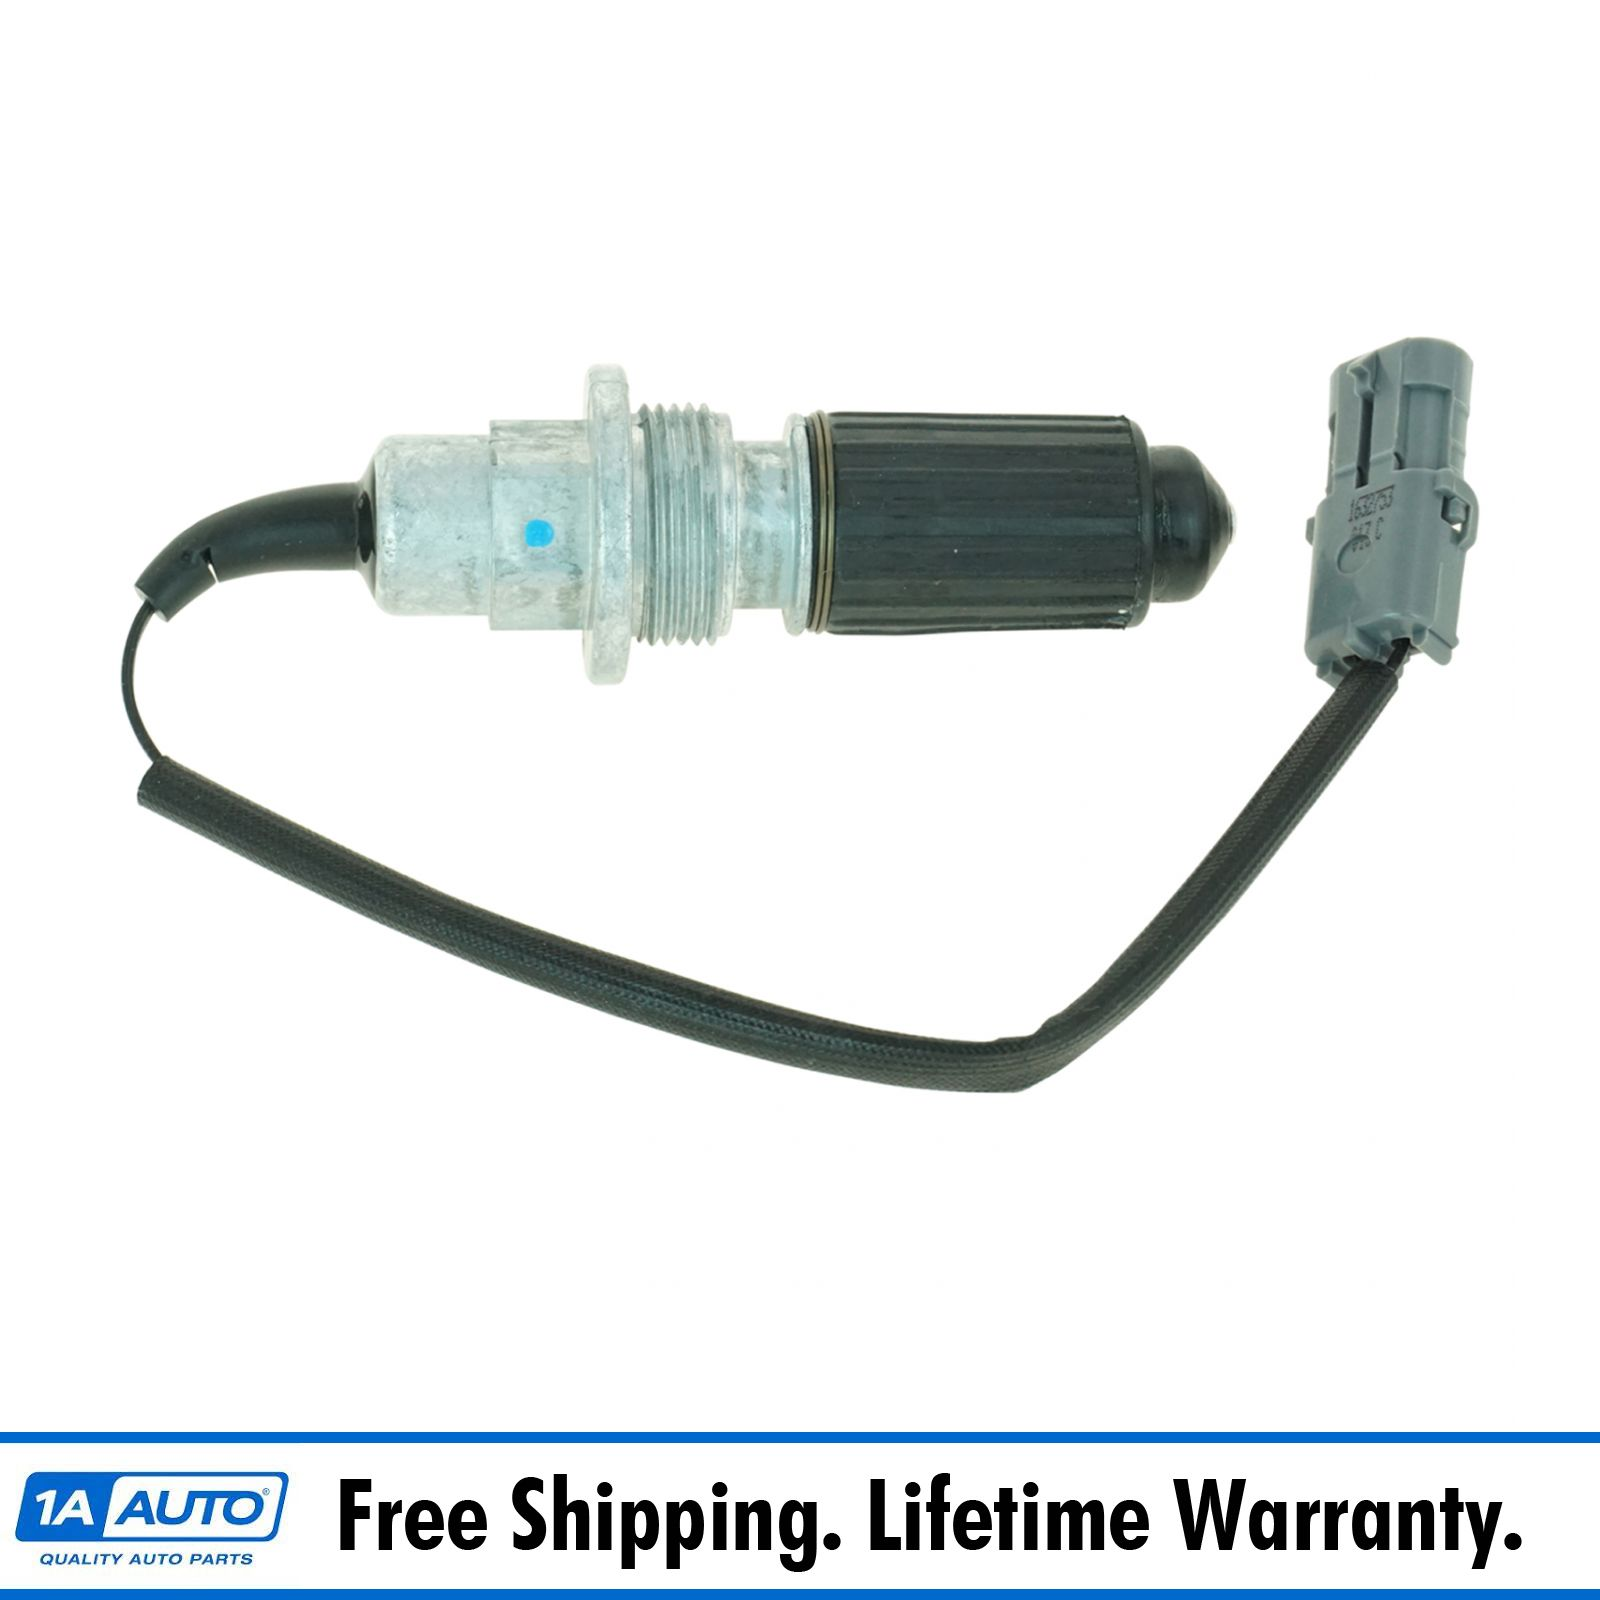 Gm 4x4 Front Axle Housing : Front axle shift actuator wd for chevy gmc tahoe